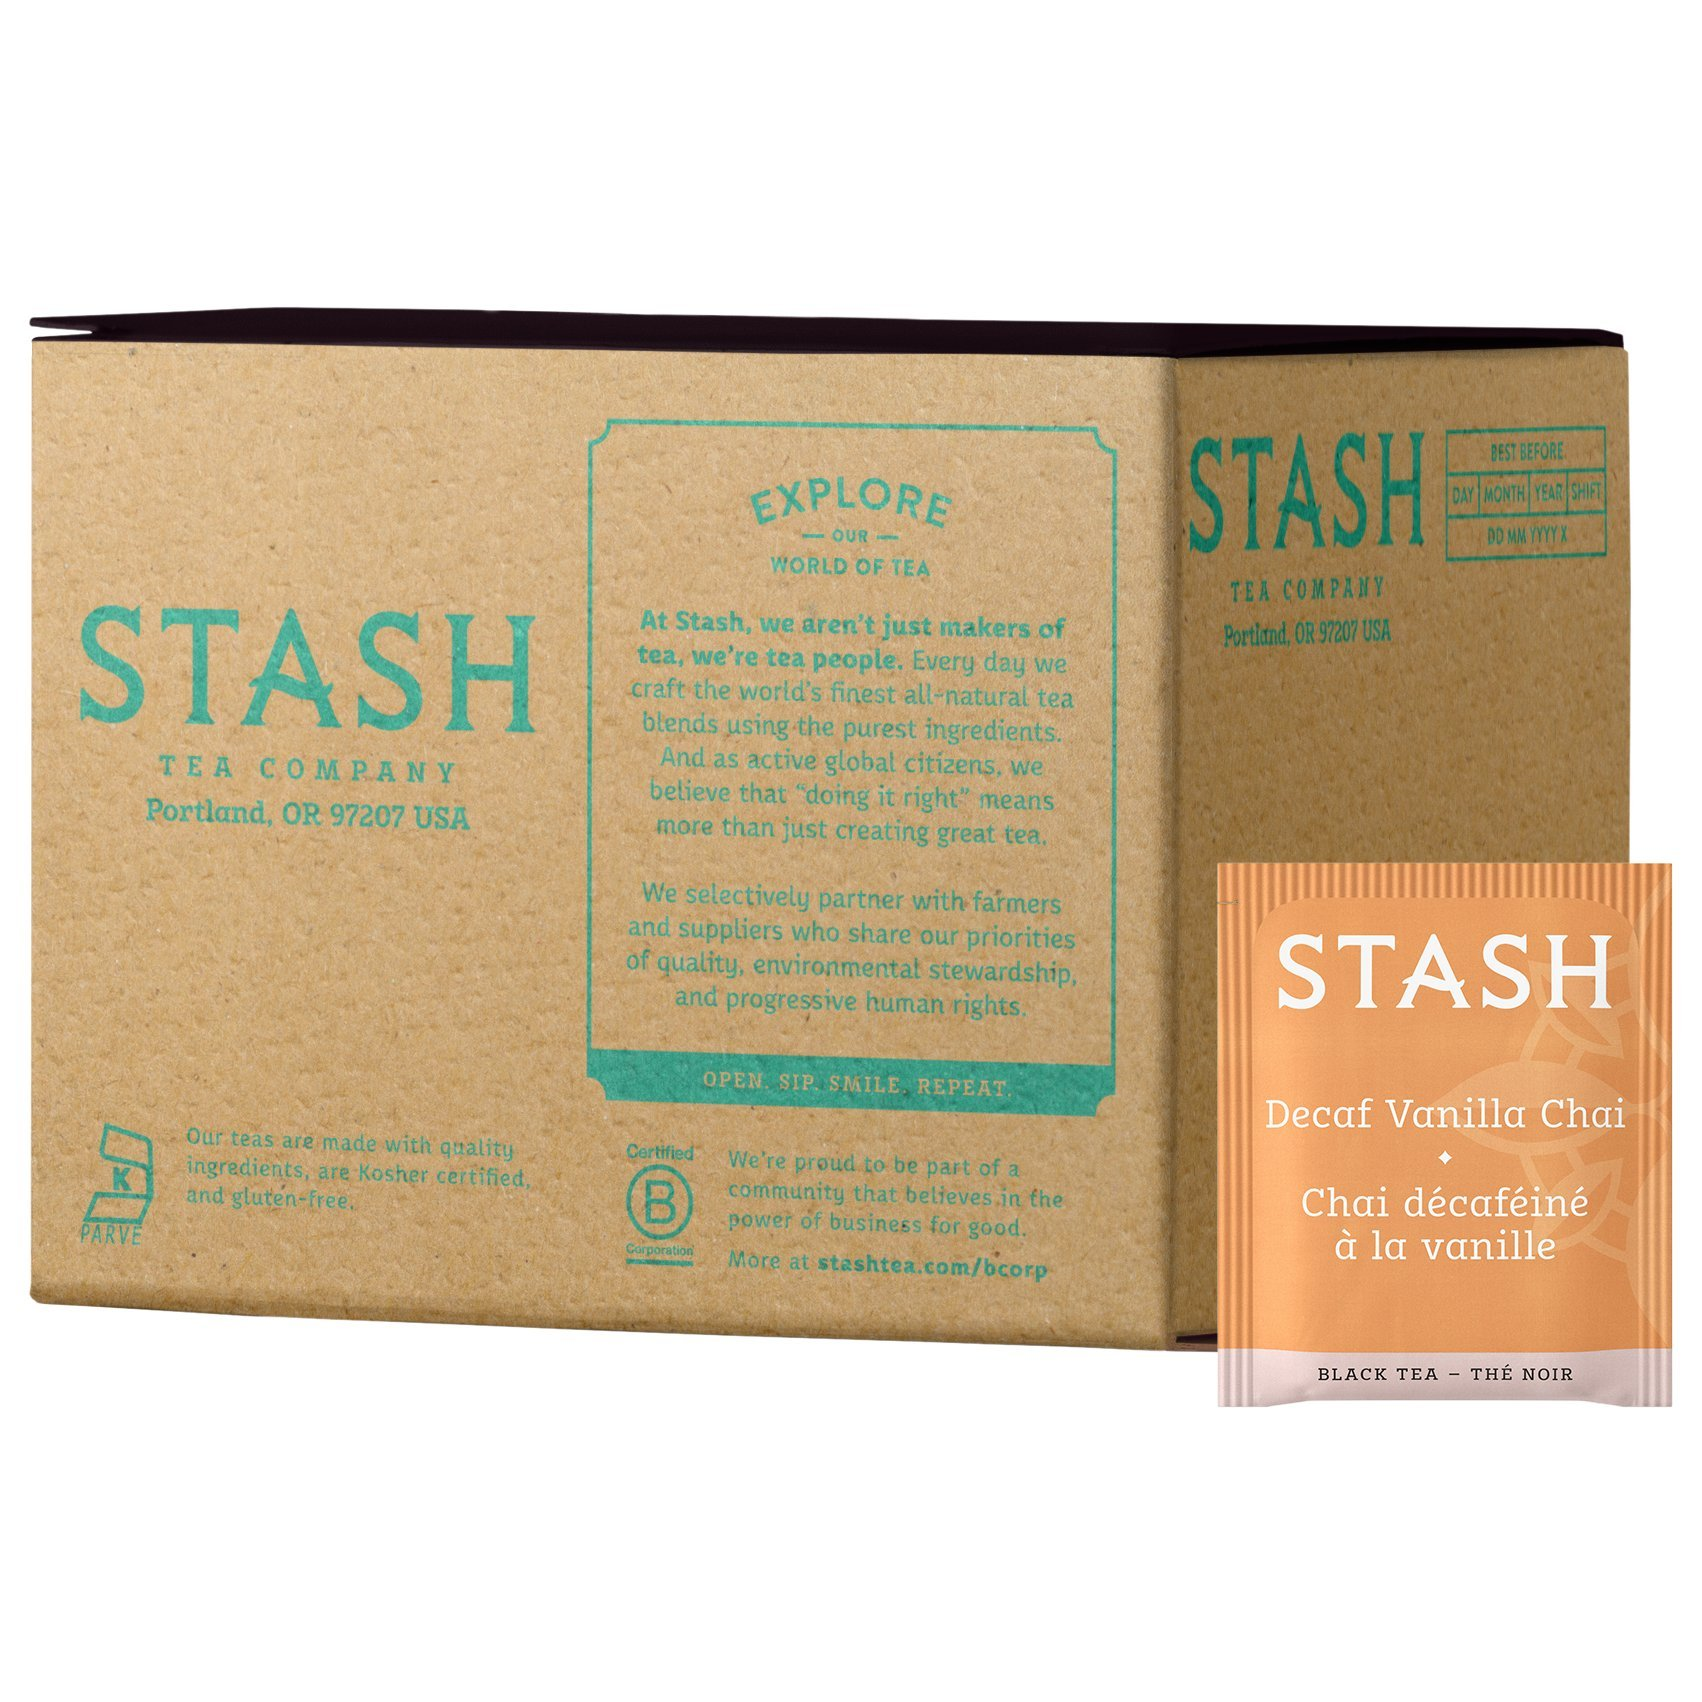 Stash Tea Decaf Vanilla Chai Black Tea 100 Count Box of Tea Bags in Foil (packaging may vary) Individual Decaffeinated Black Tea Bags for Use in Teapots Mugs or Cups, Brew Hot Tea or Iced Tea by Stash